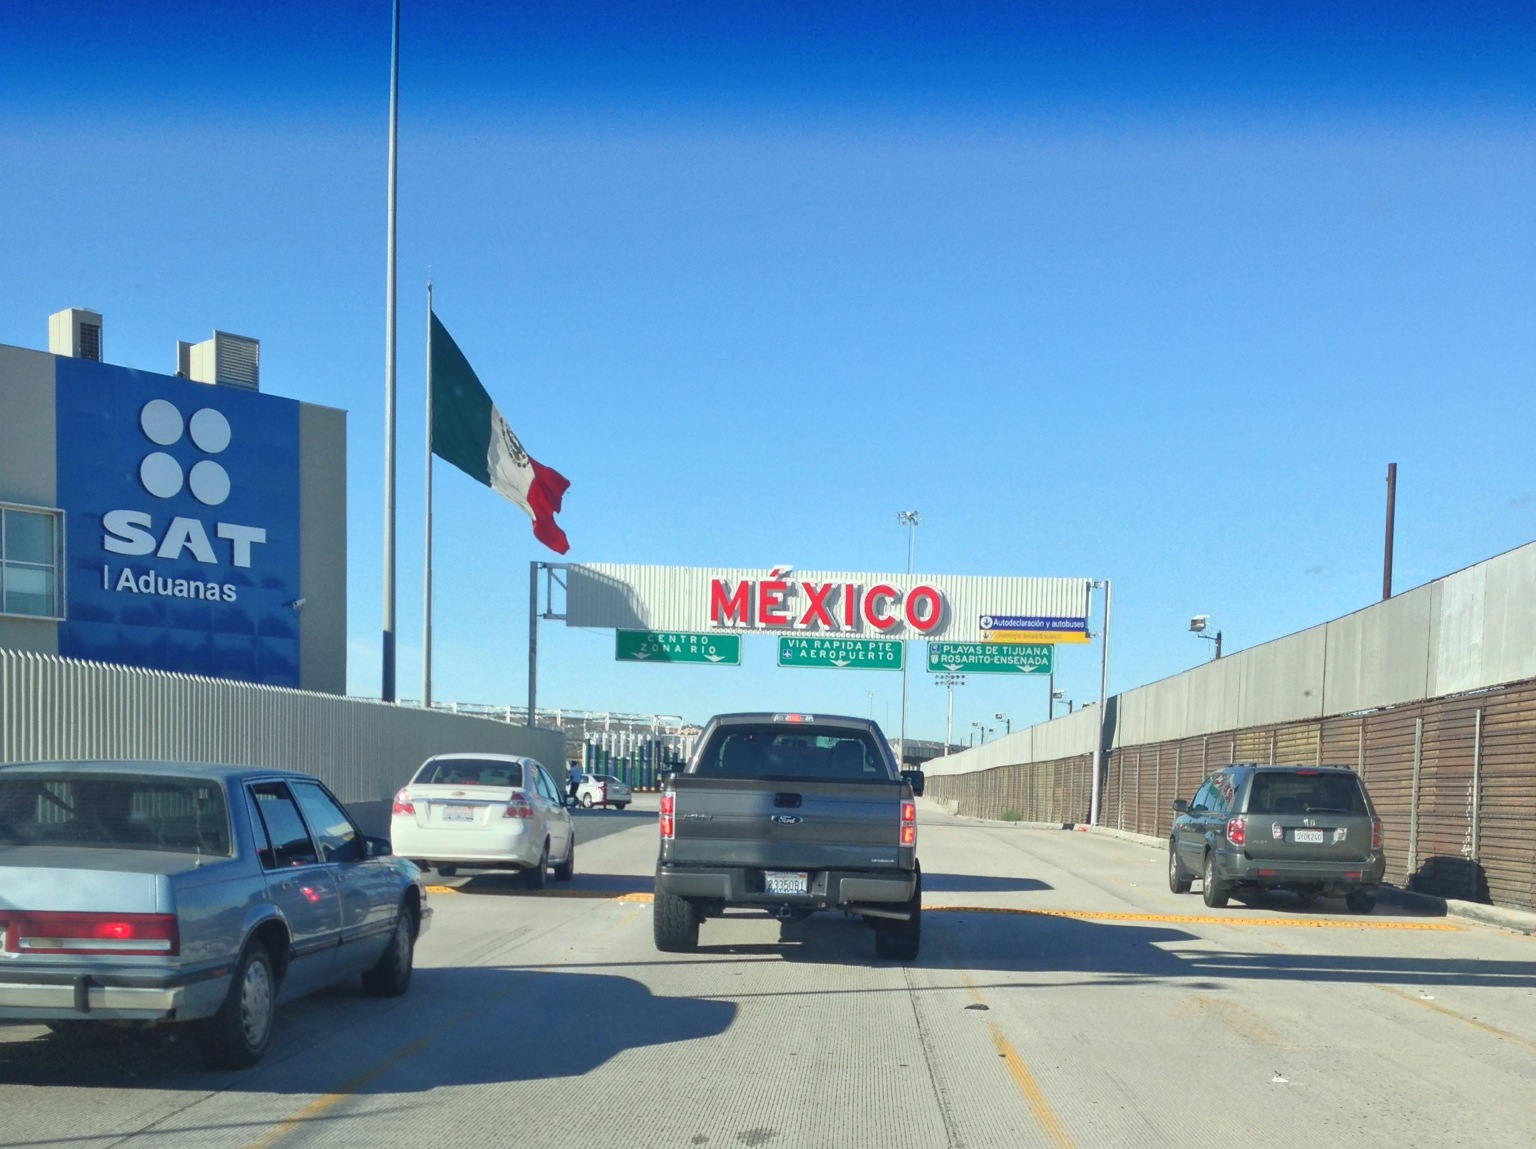 San Ysidro Border Crossing Our Life On The Border